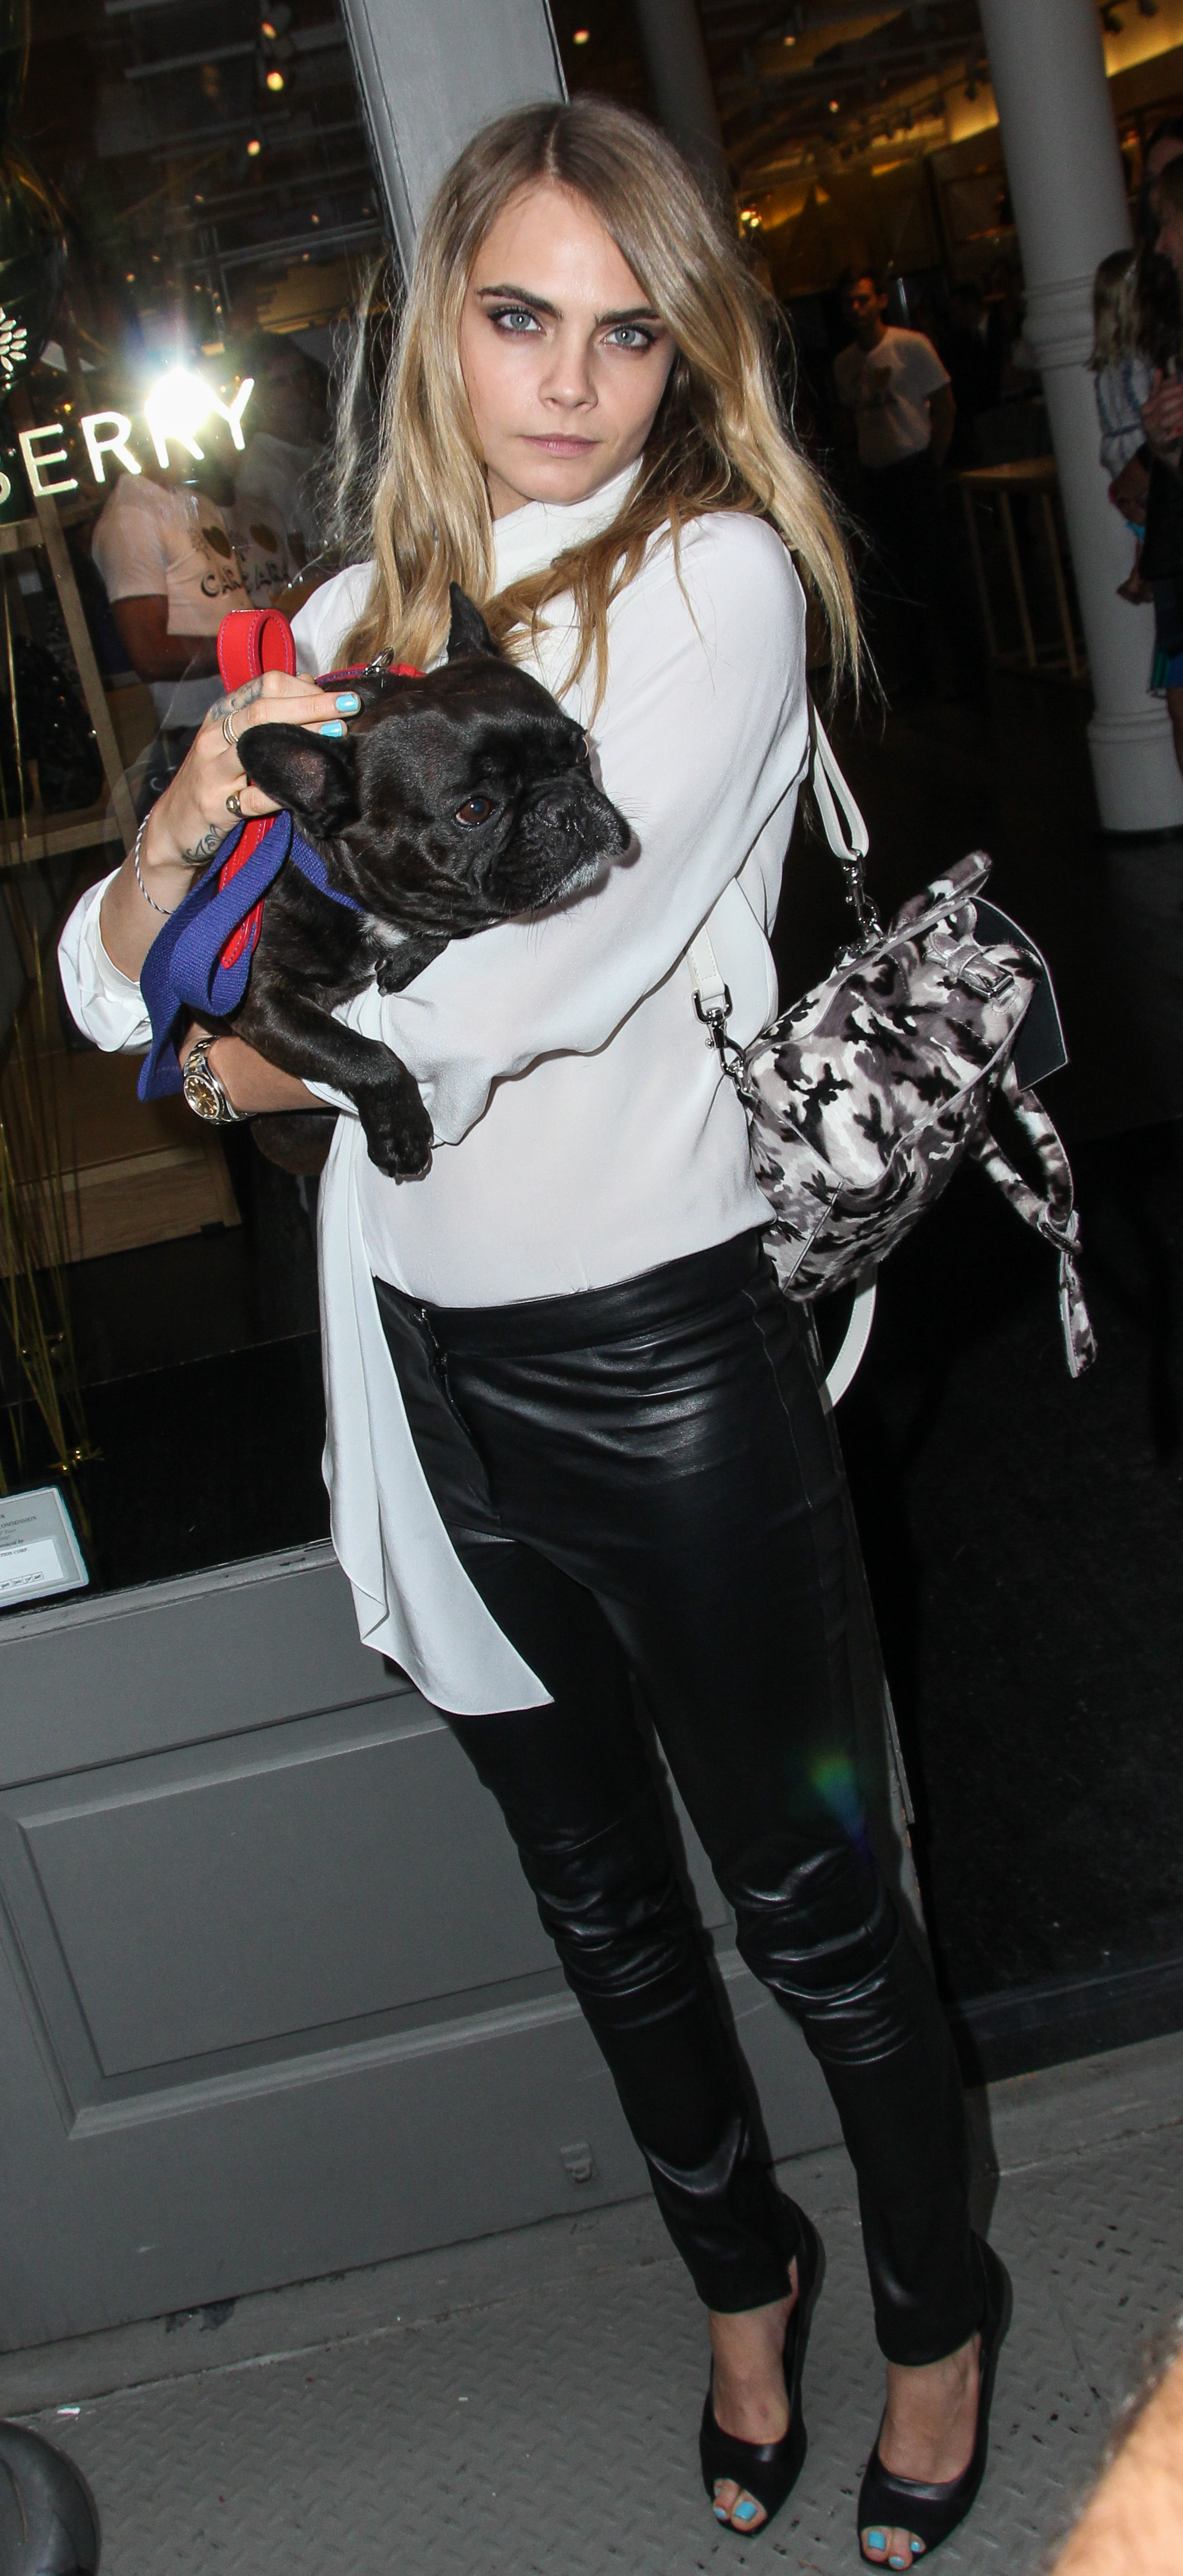 Cara Delevingne Is Spotted in Soho NYC Holding A Dog InHer Arms